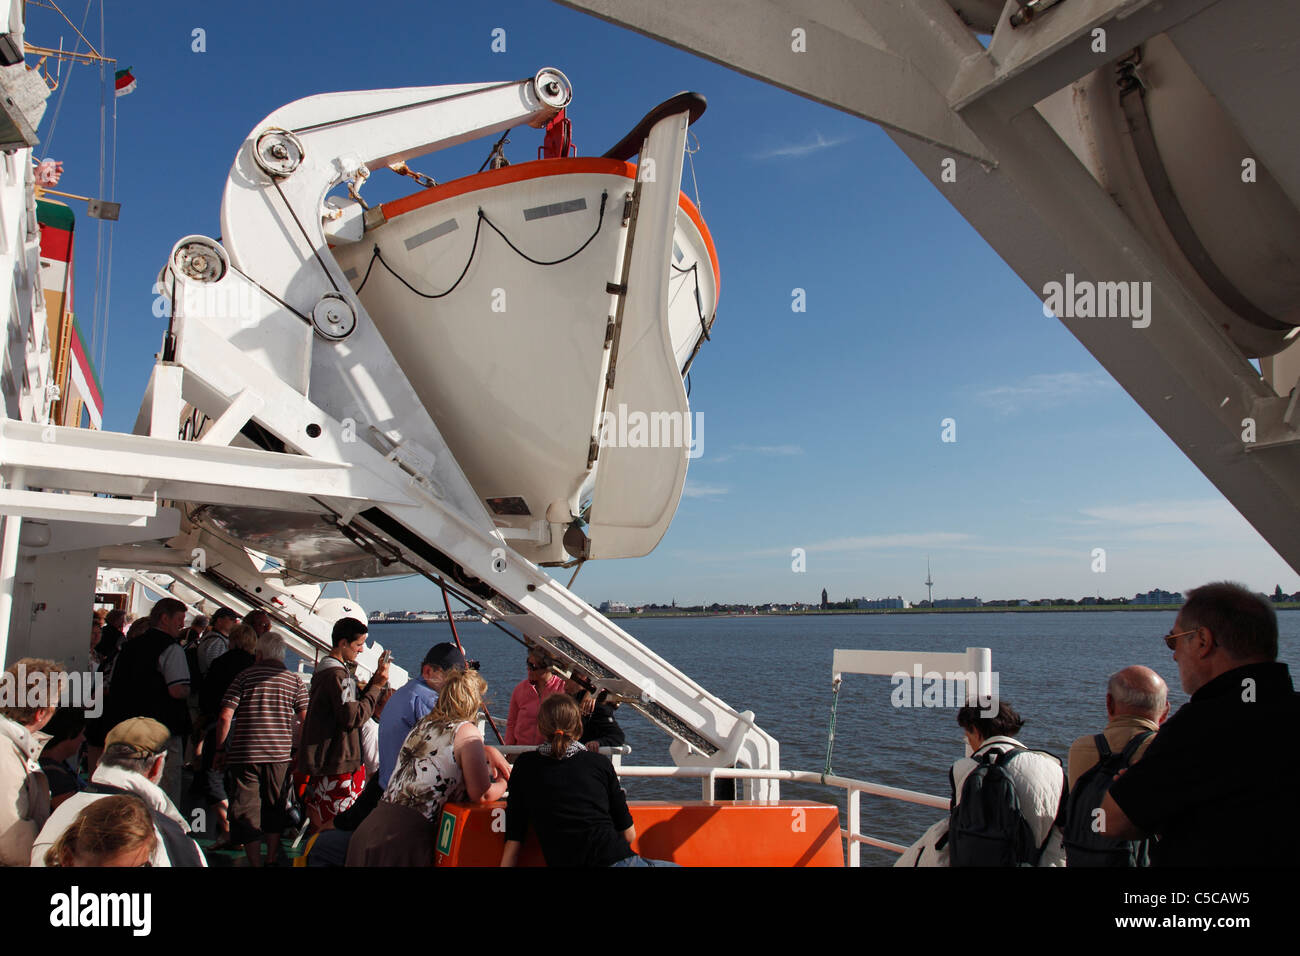 people and life boat on ferry Atlantis; MS Atlantis crossing between Cuxhaven and Heligoland  (Helgoland), Germany - Stock Image